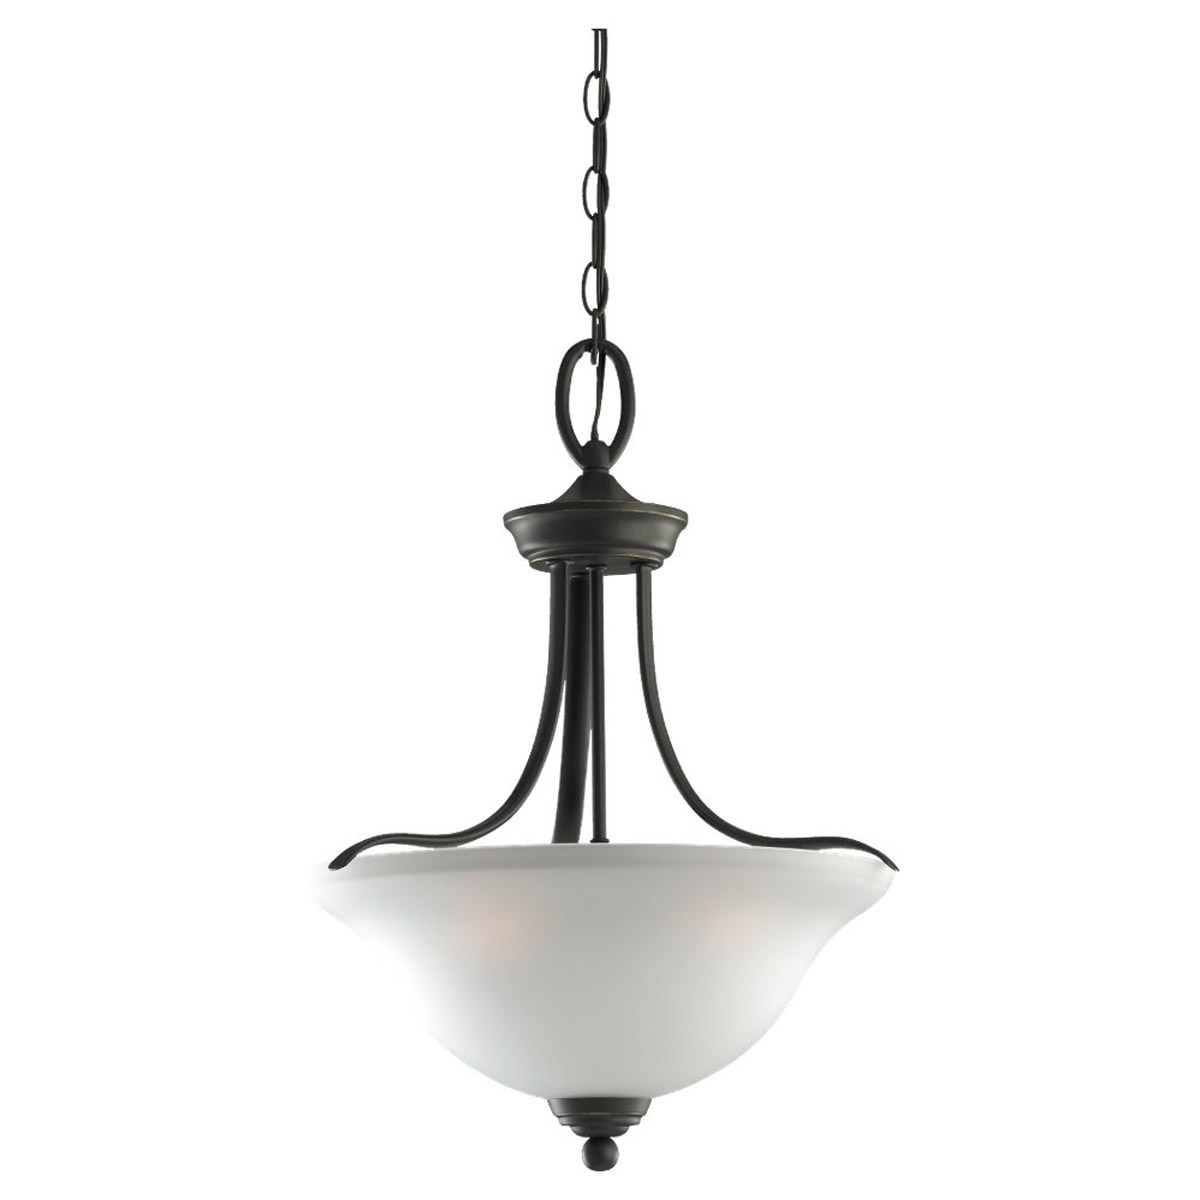 Sea Gull Lighting Wheaton 3 Light Pendant in Heirloom Bronze 65626-782